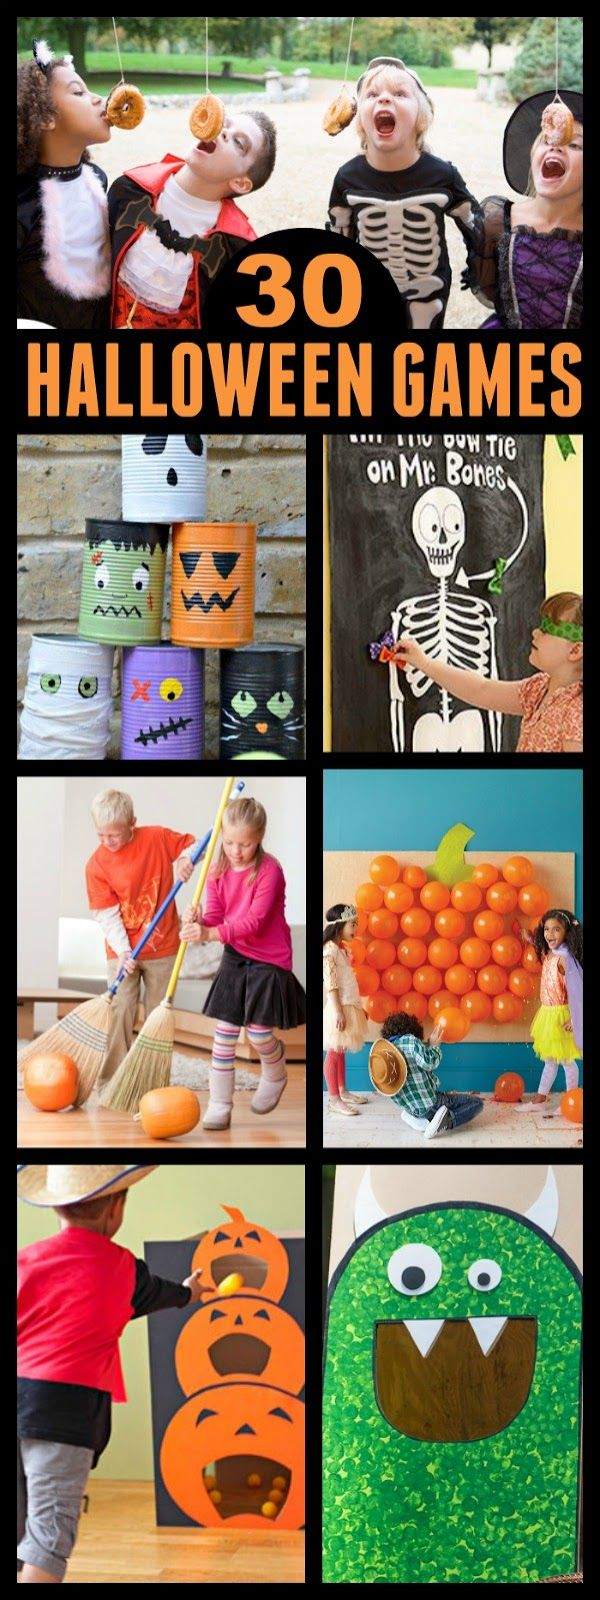 halloween games for kids in 2018 party ideas pinterest halloween games game ideas and 30th